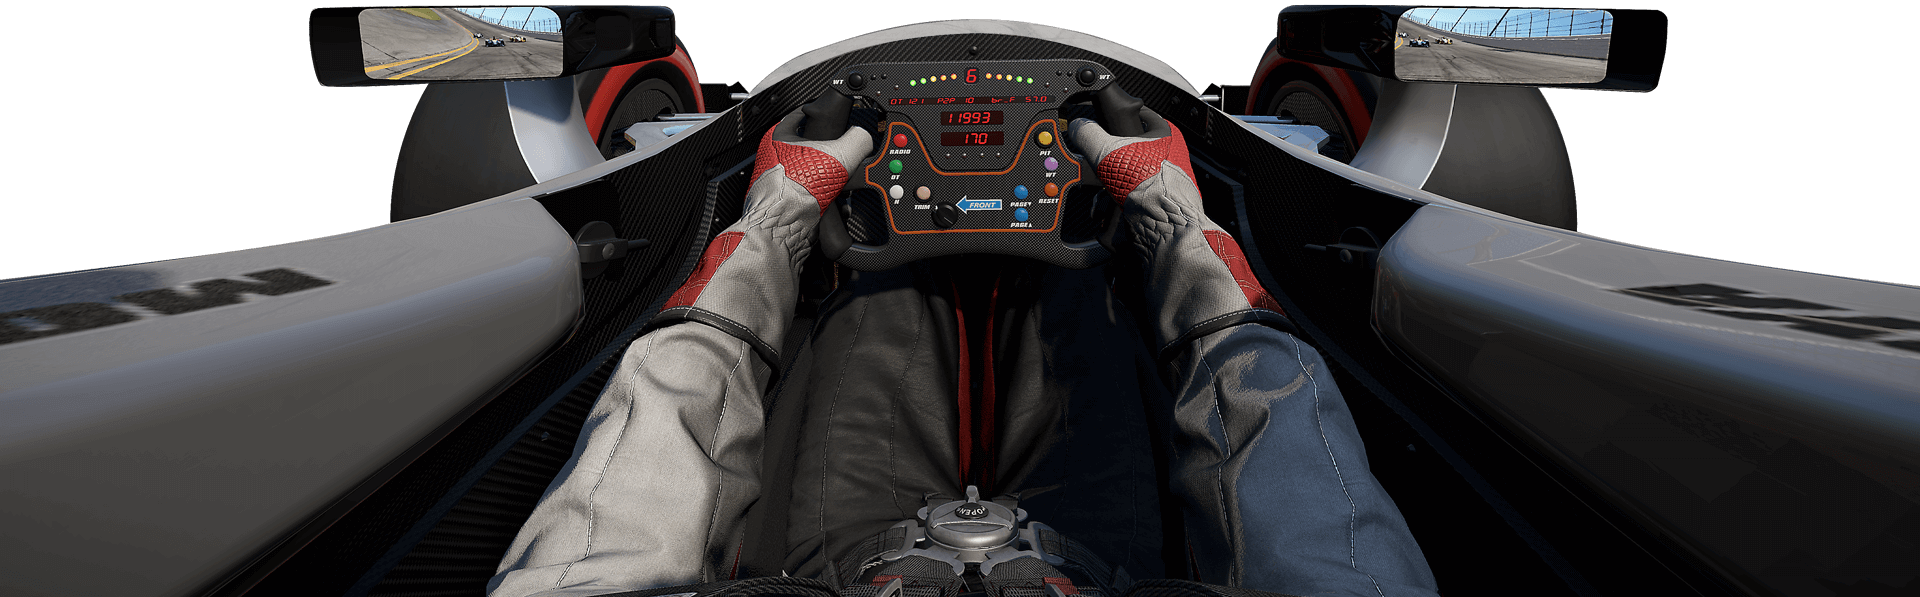 Project Cars 2 Racing Simulator